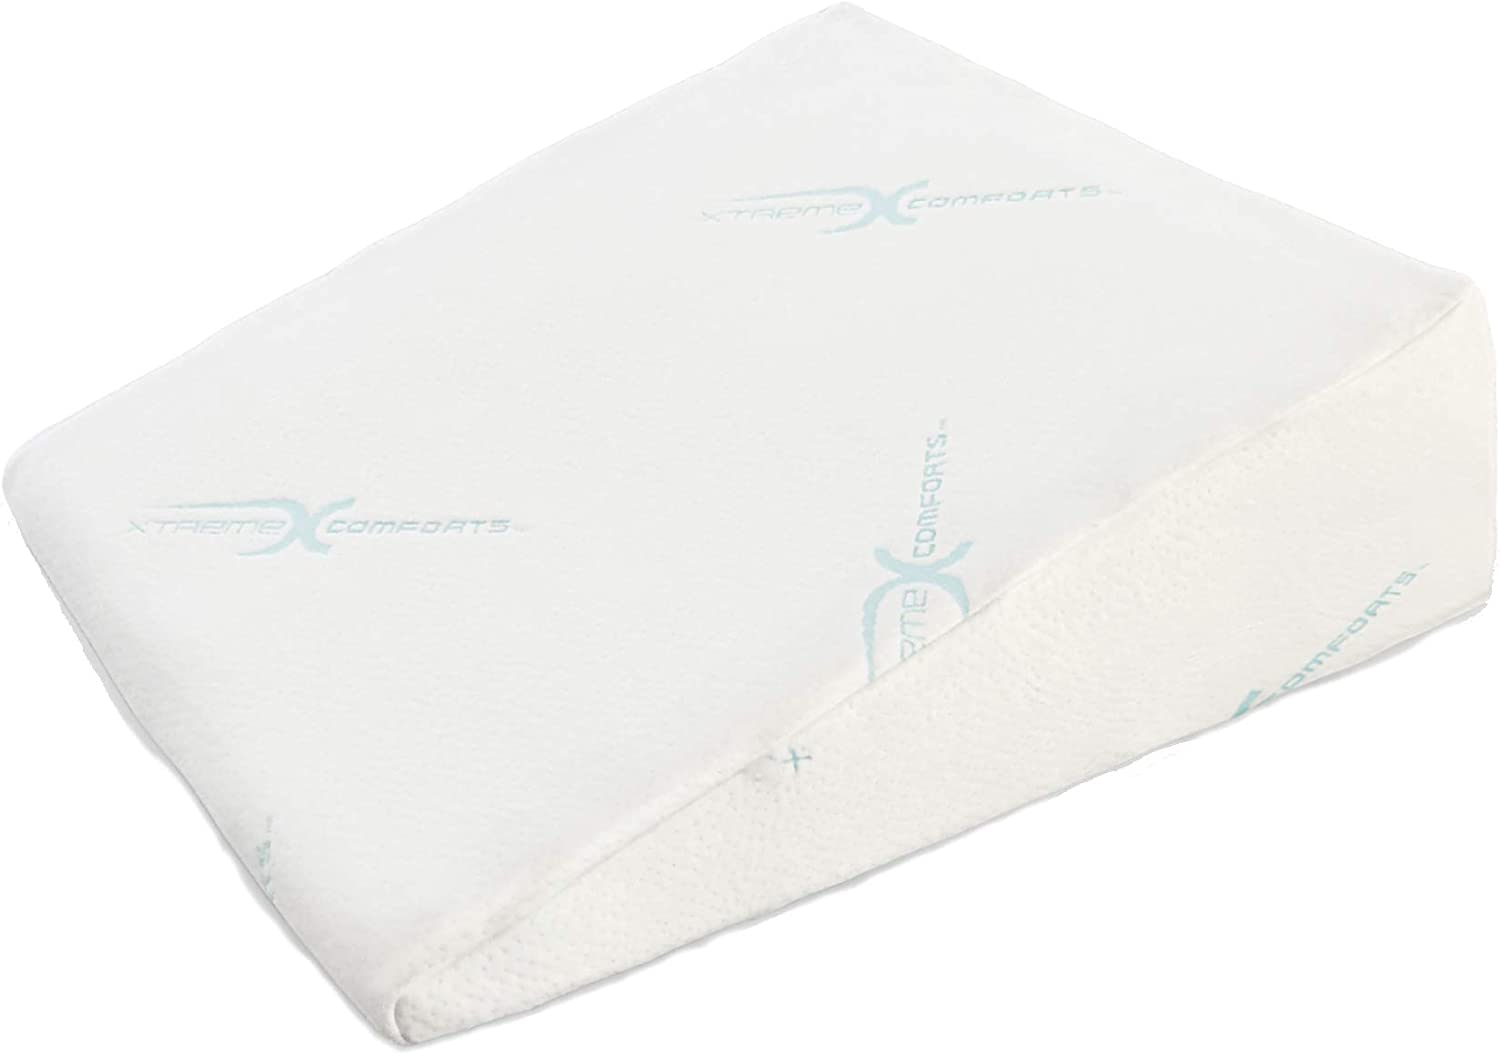 """Xtreme Comforts 7"""" Memory Foam Bed Wedge Pillow"""